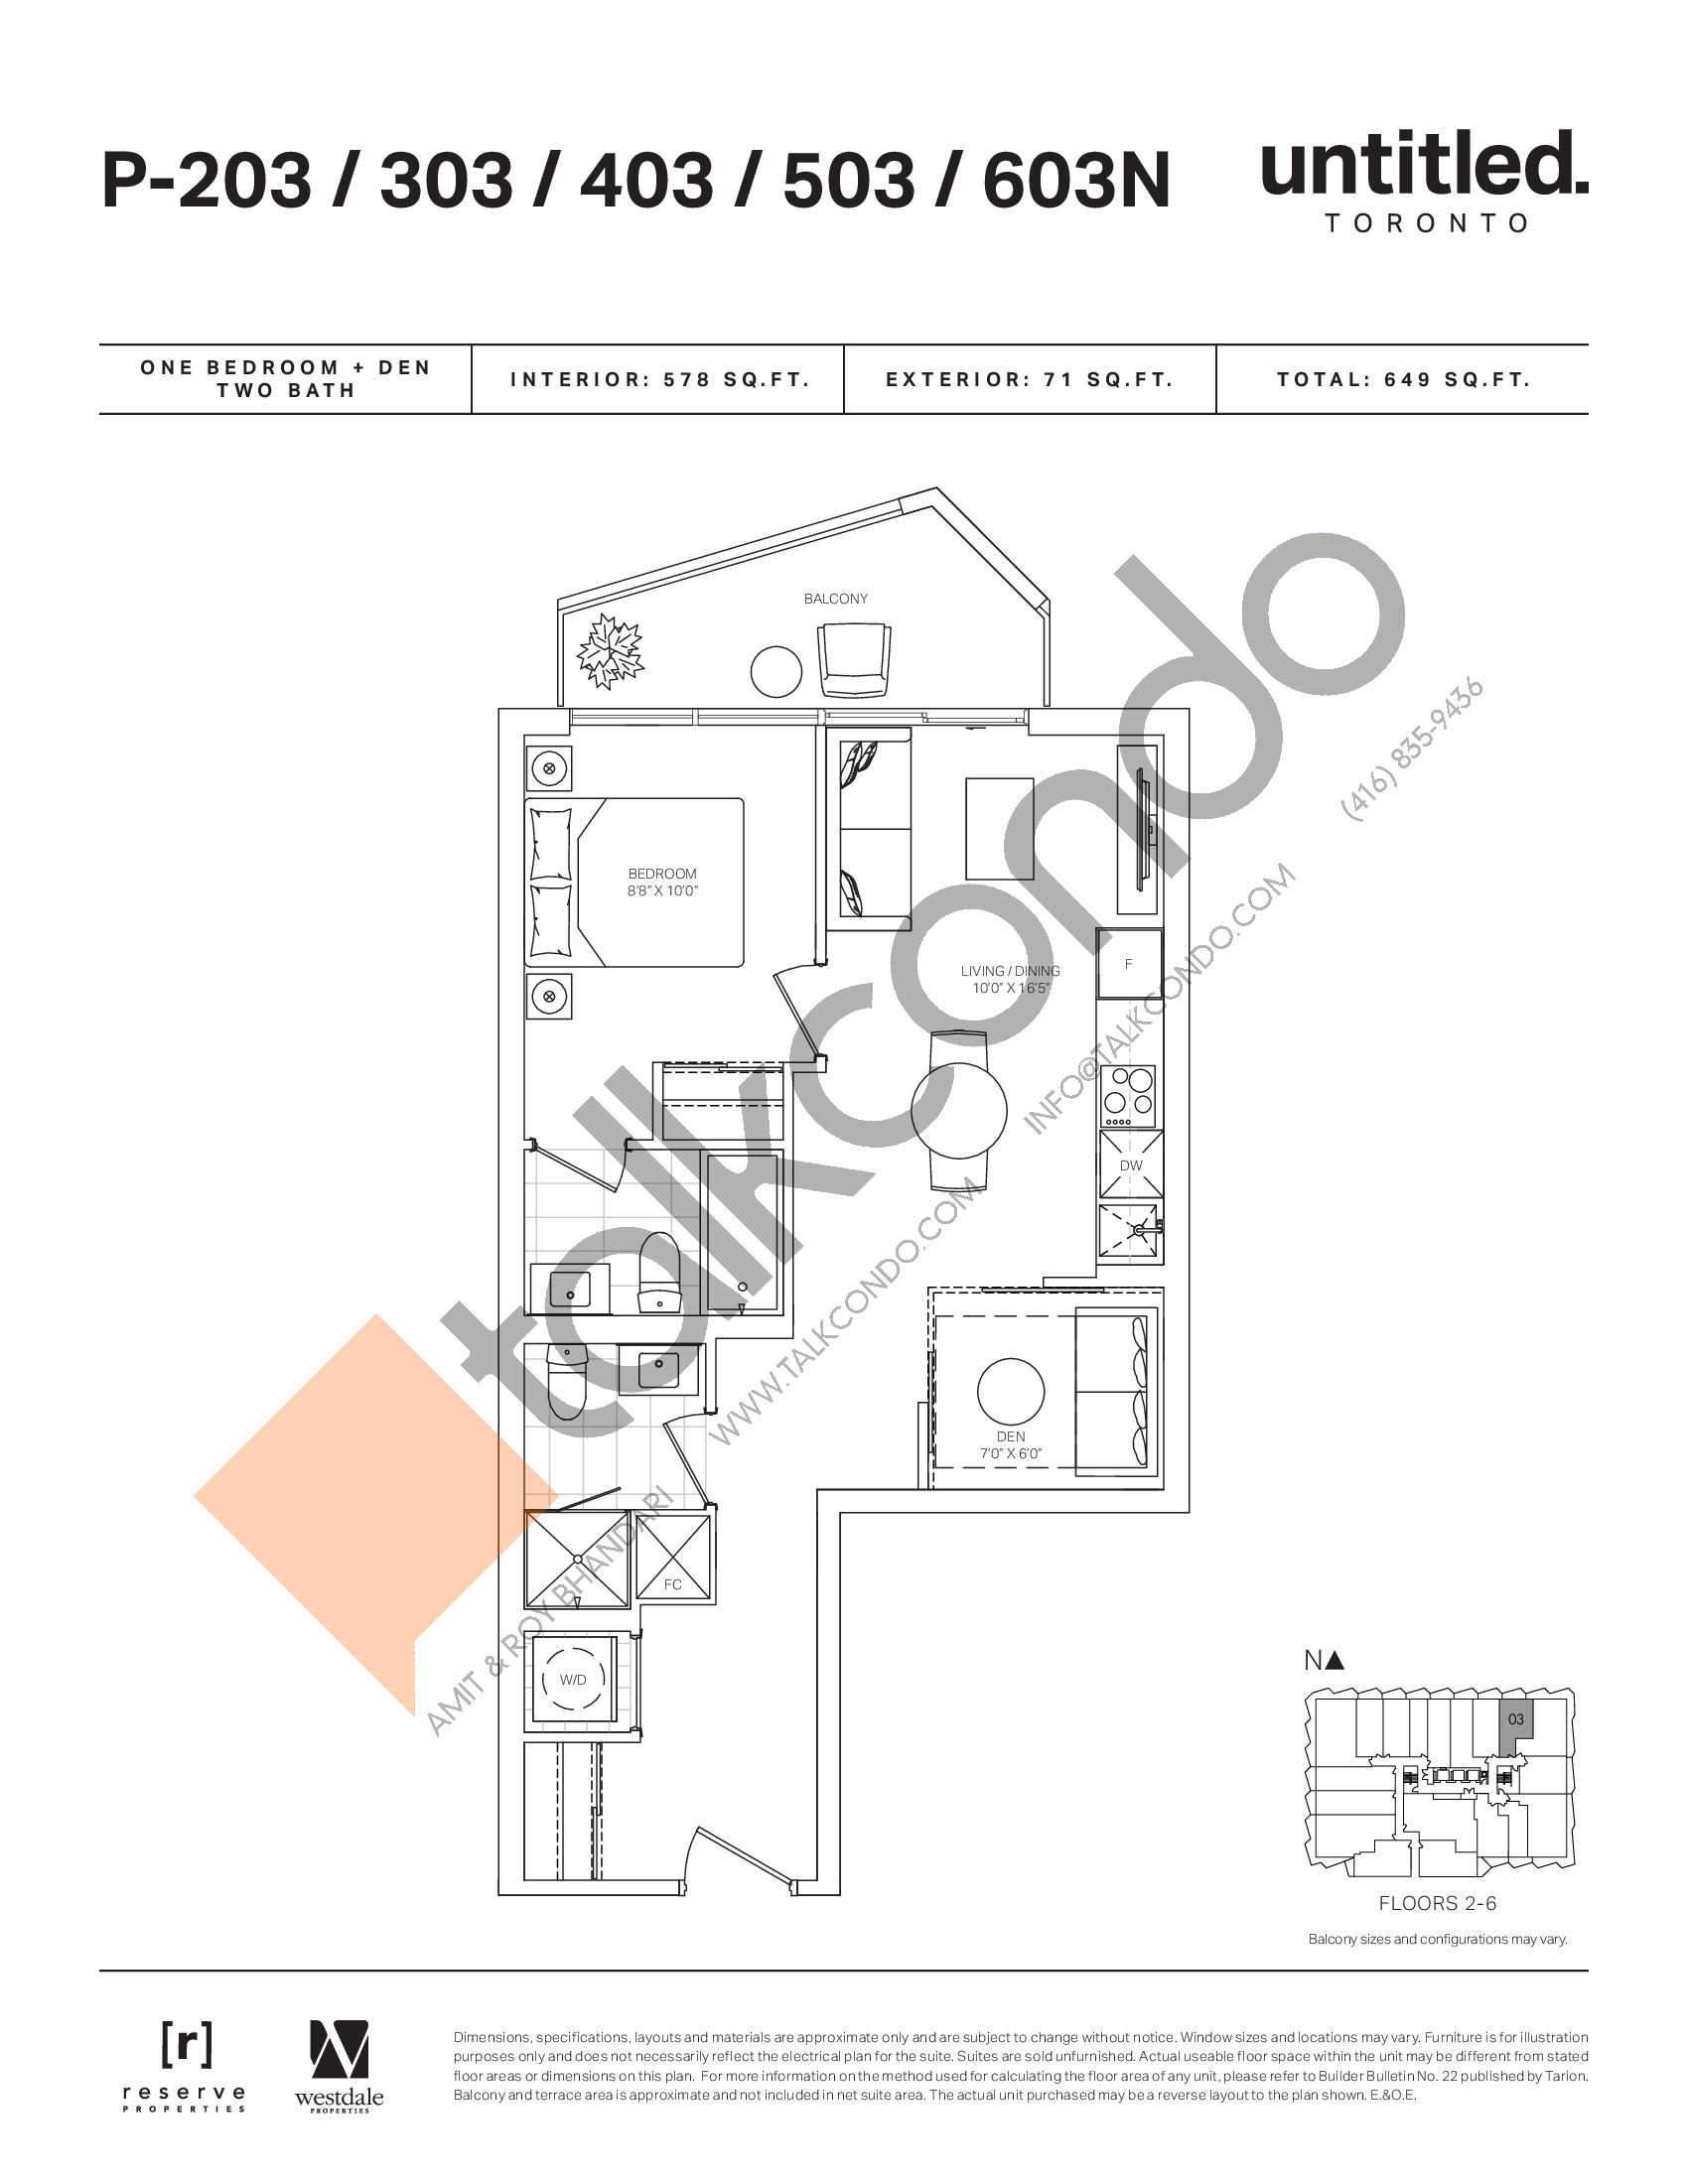 P-203/303/403/503/603N Floor Plan at Untitled North Tower Condos - 578 sq.ft